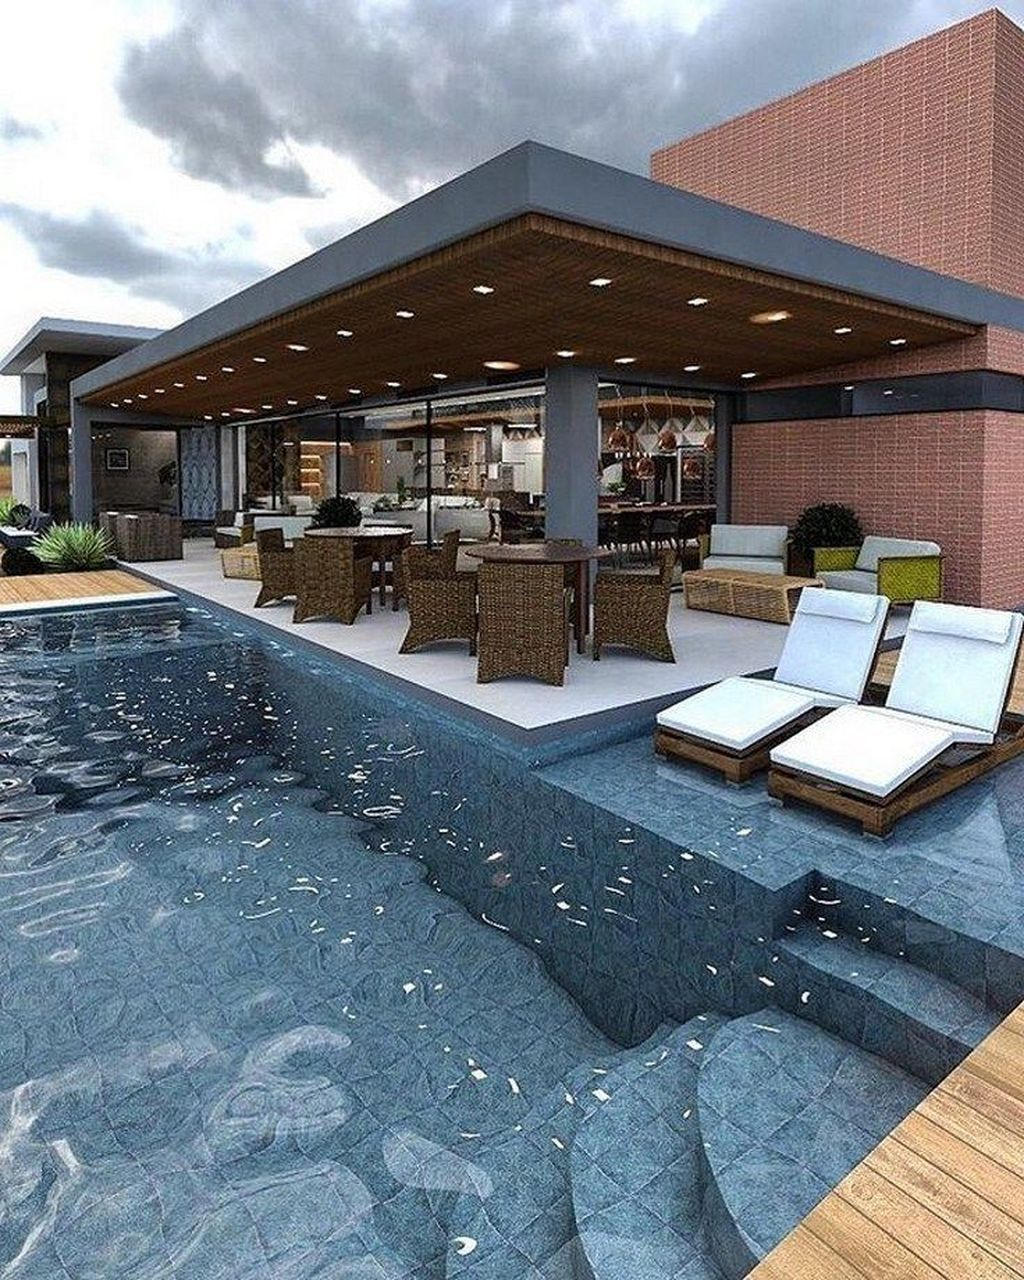 30 Lovely Backyard Pool Ideas For A Comfortable Relaxation Place Trenduhome Backyard Pool Designs Swimming Pools Backyard Small Pool Design